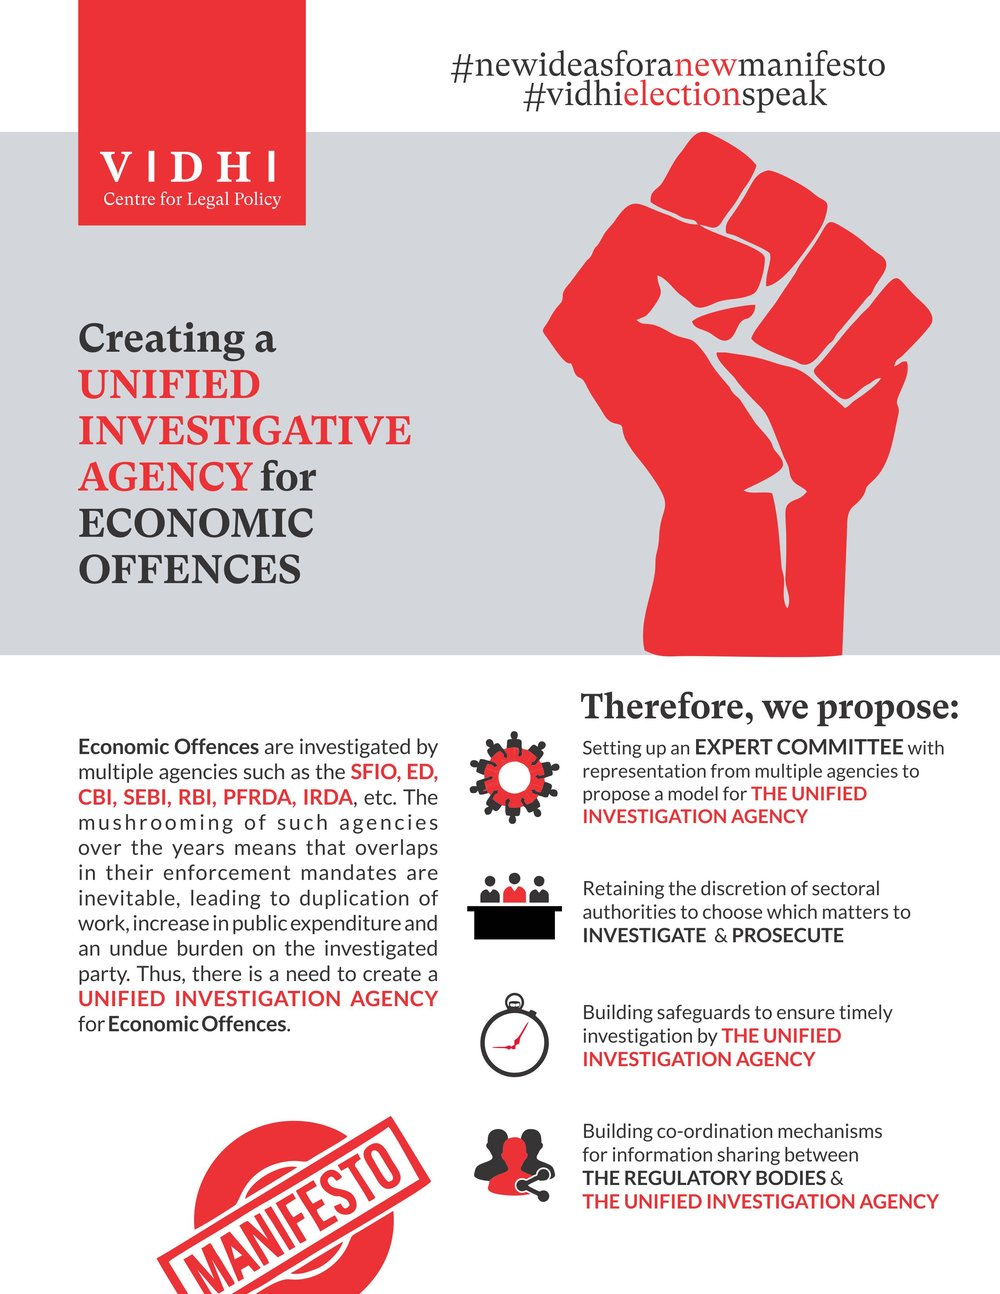 Creating a Unified Investigative Agency for Economic Offences 1